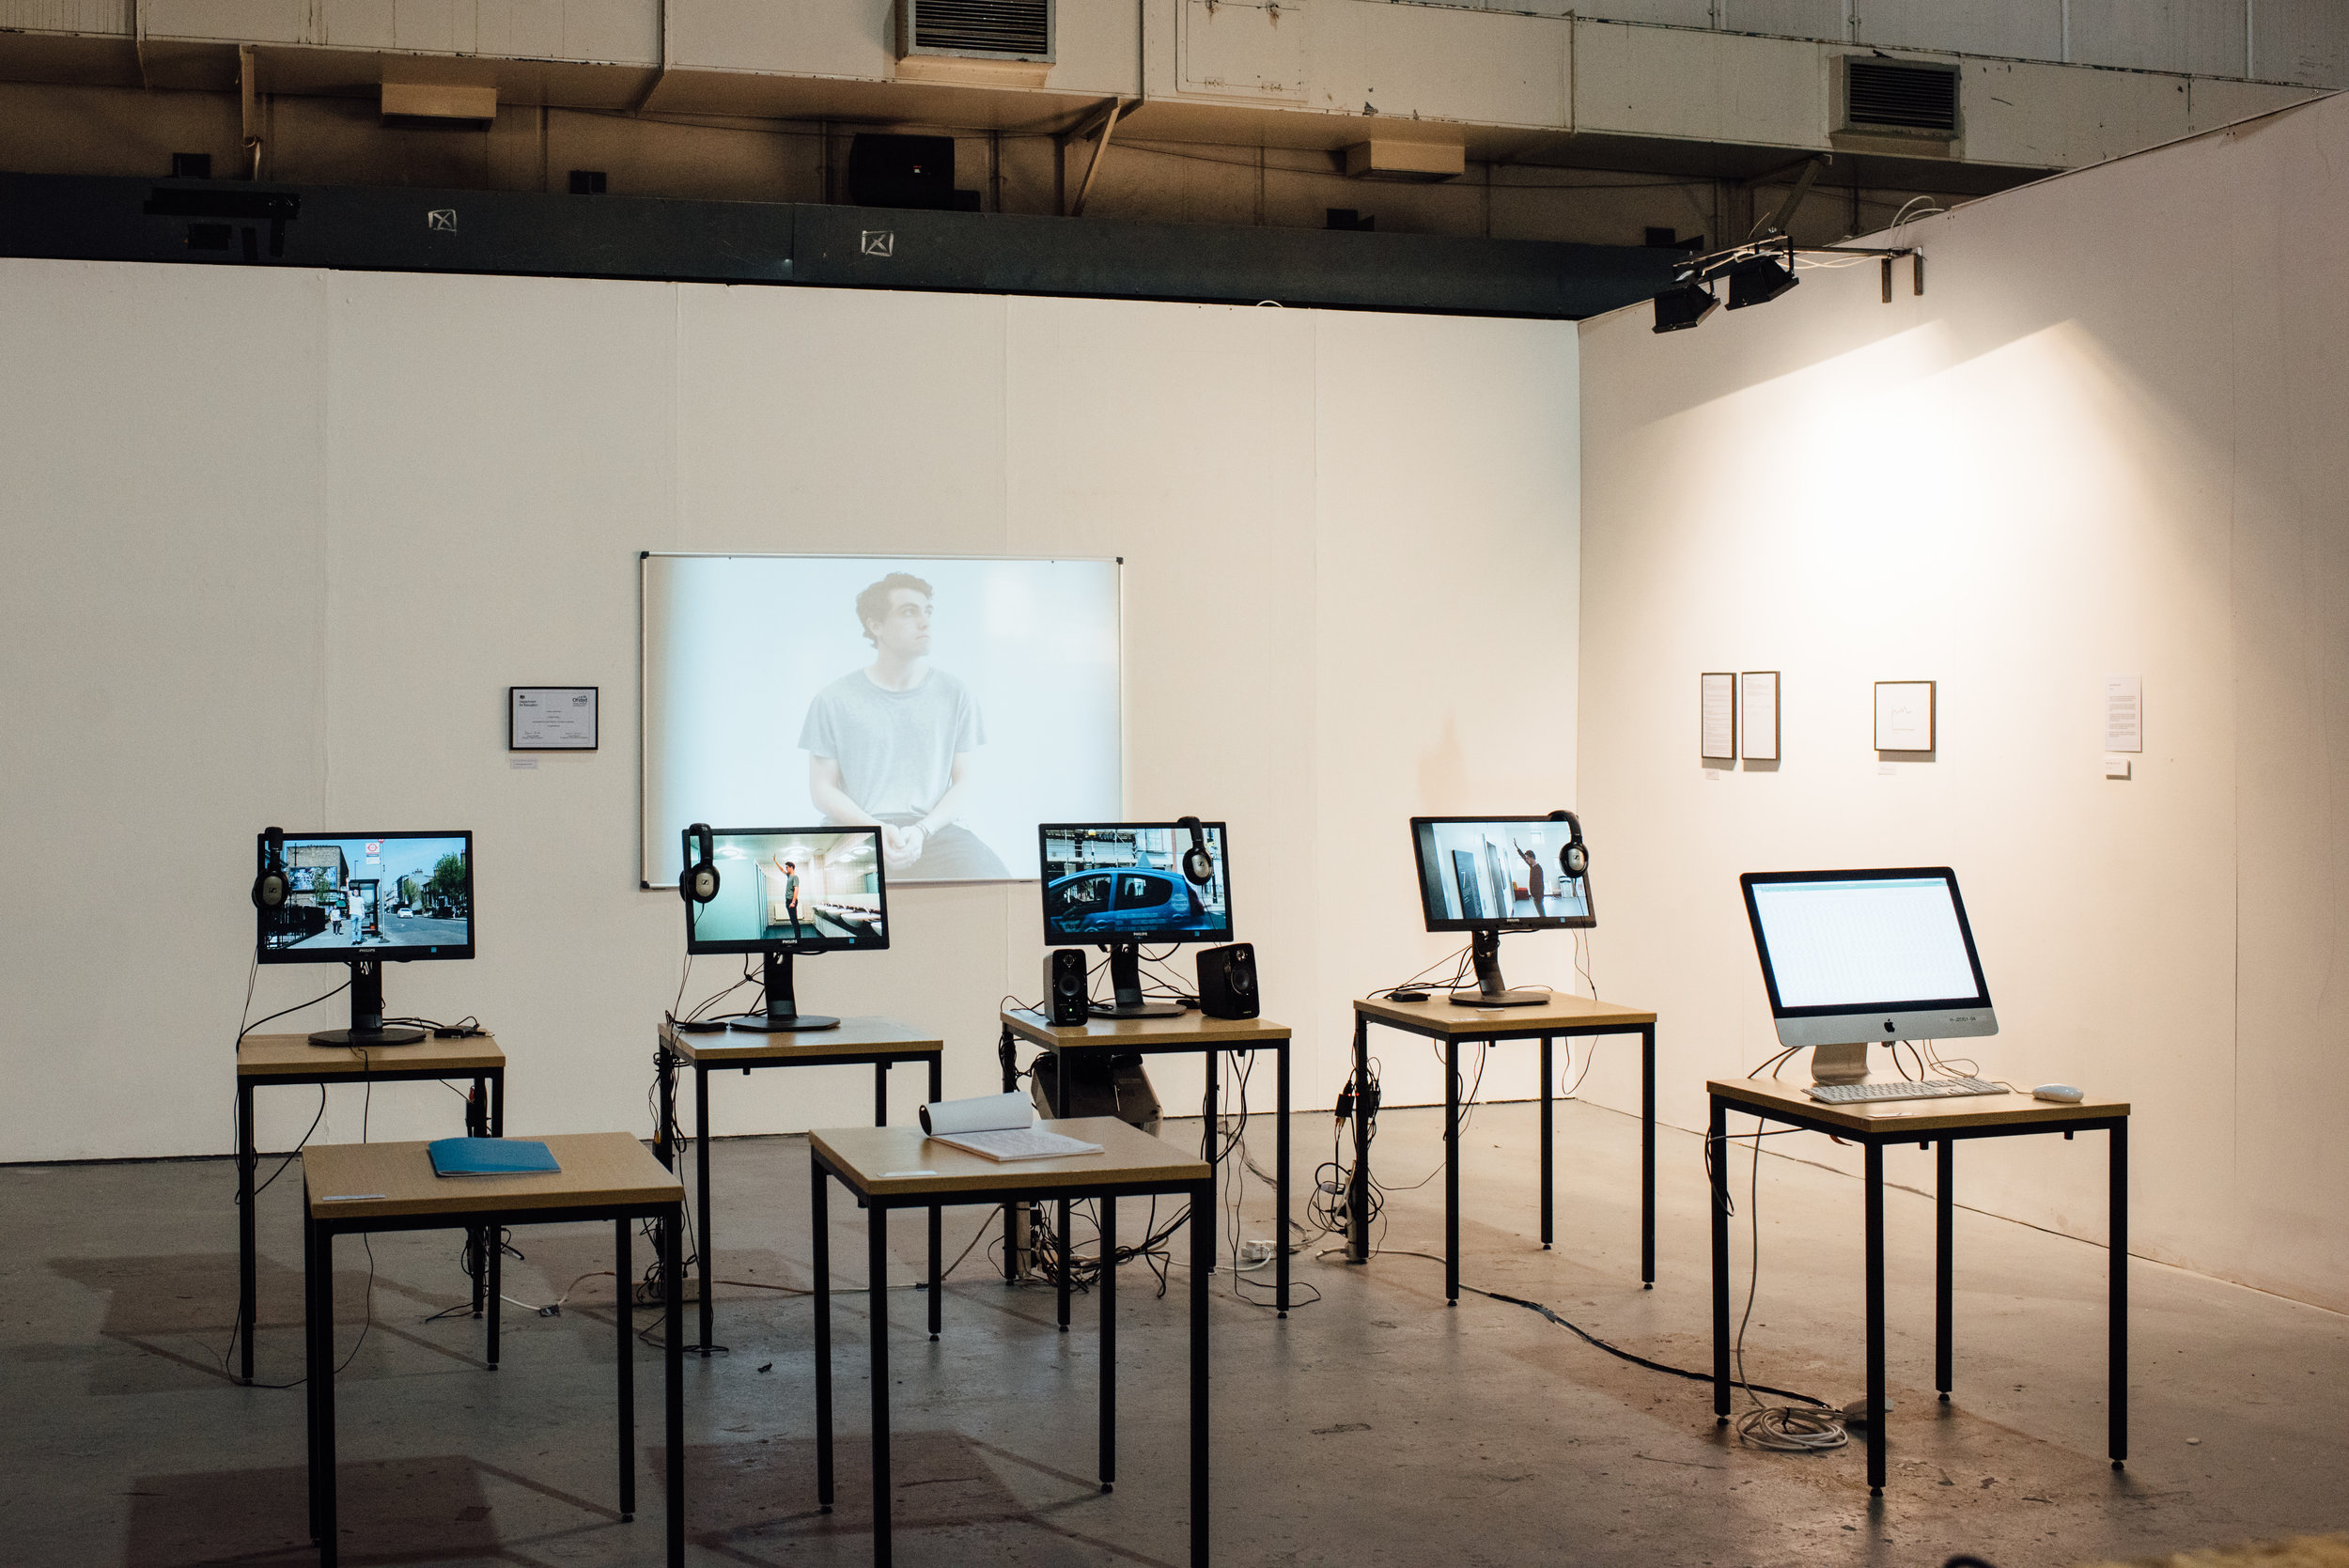 Hard work pays off as shown at Ambika P3 as part of Collide 2018 (Contemporary Media Practice degree show)